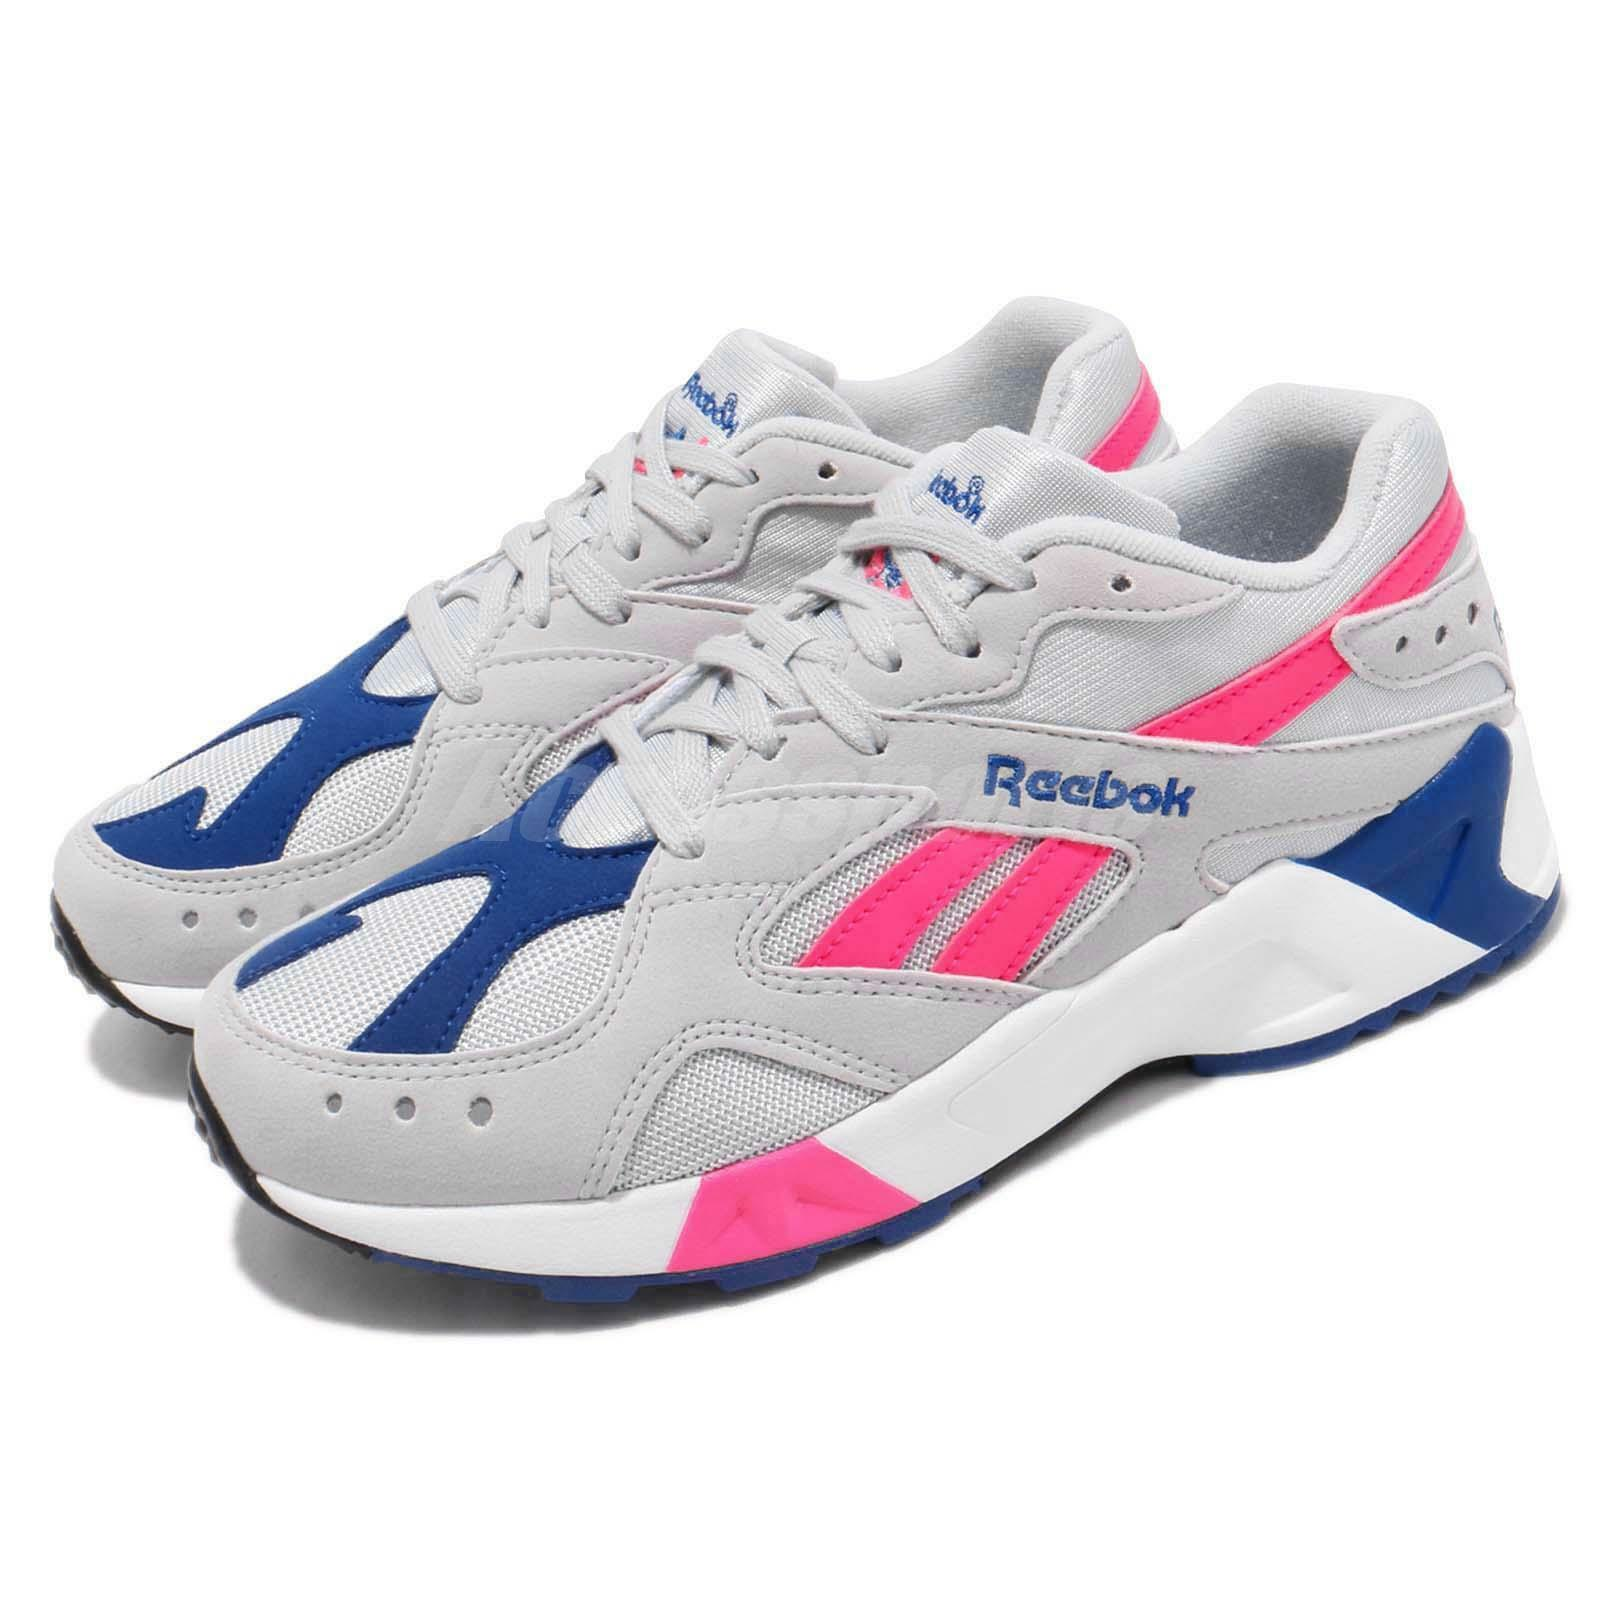 Reebok AZTREK Grey Pink blueee White Men Women Lifestyle Running Daddy shoes DV3941